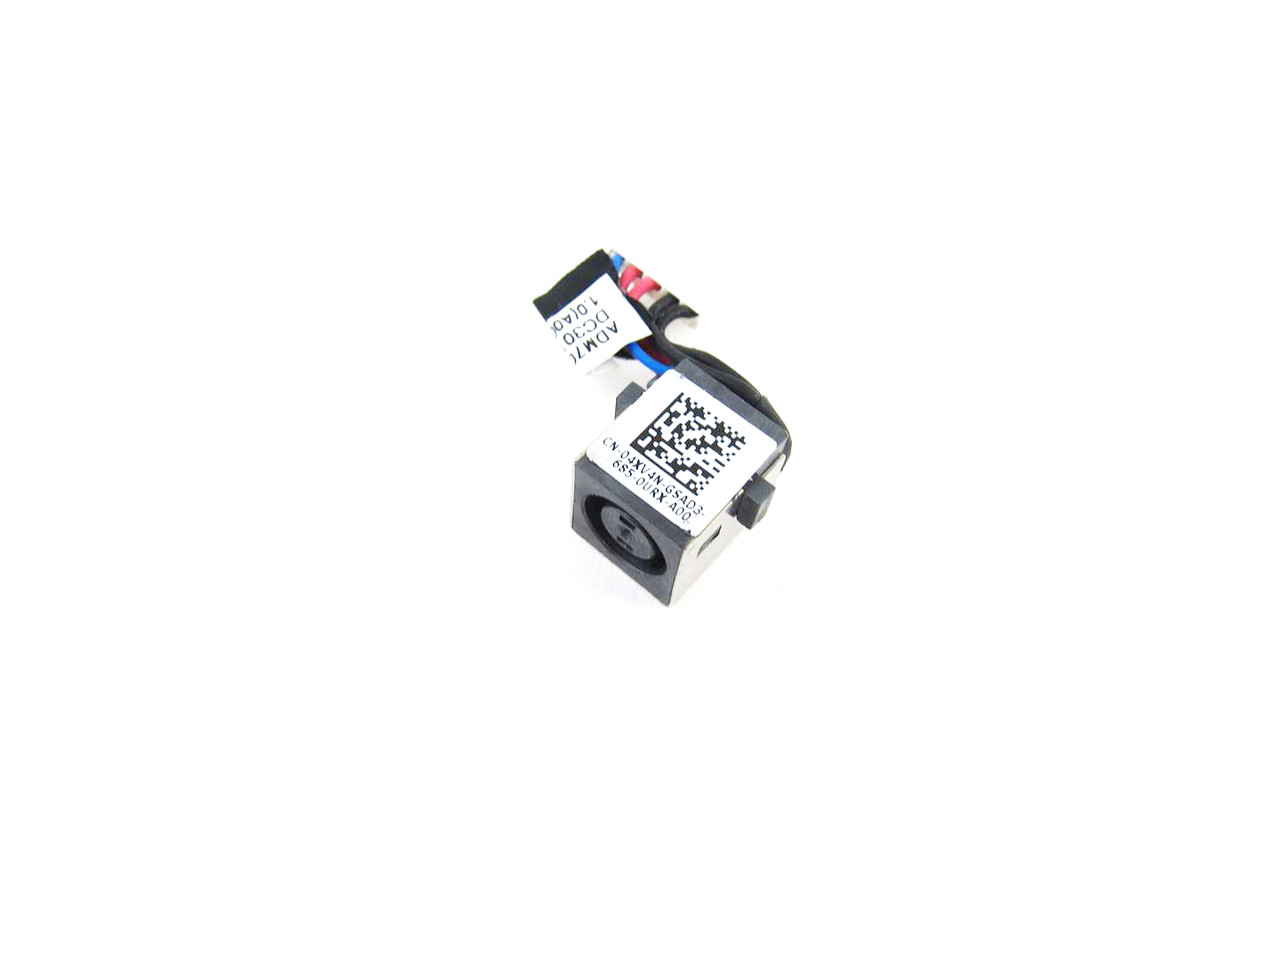 Dell Latitude E5470 DC Power Input Jack with Cable - 4XV4N